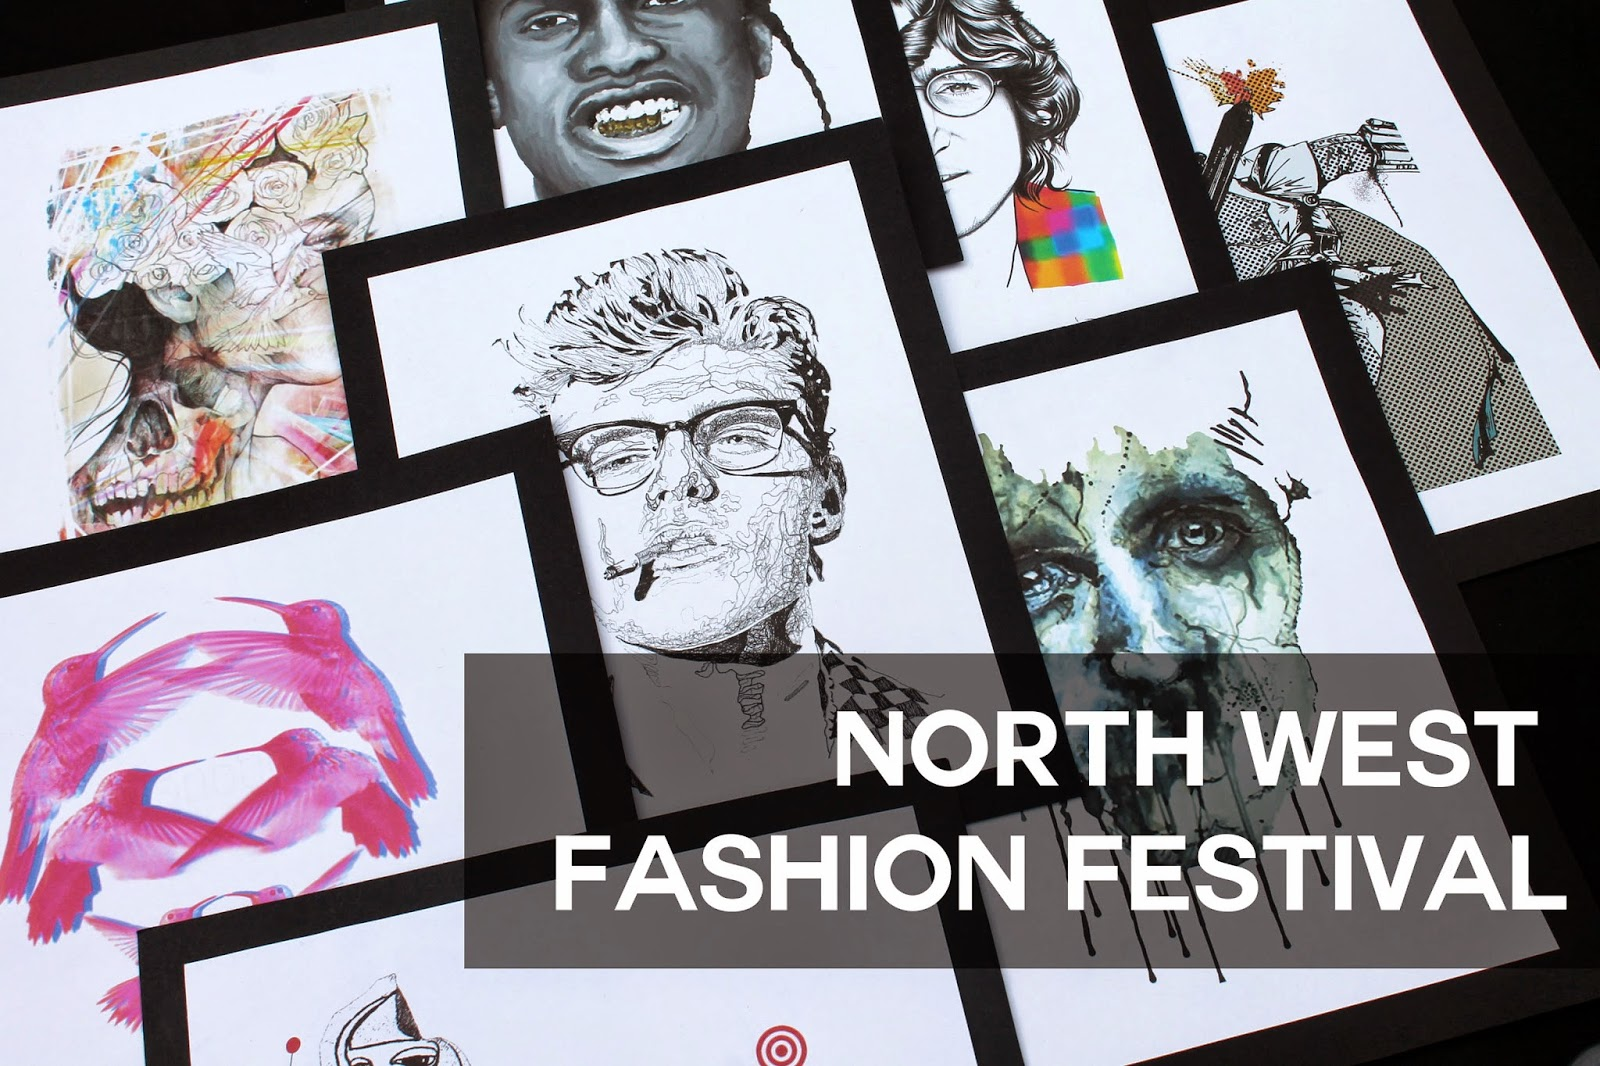 north west fashion festival, tee co art prints